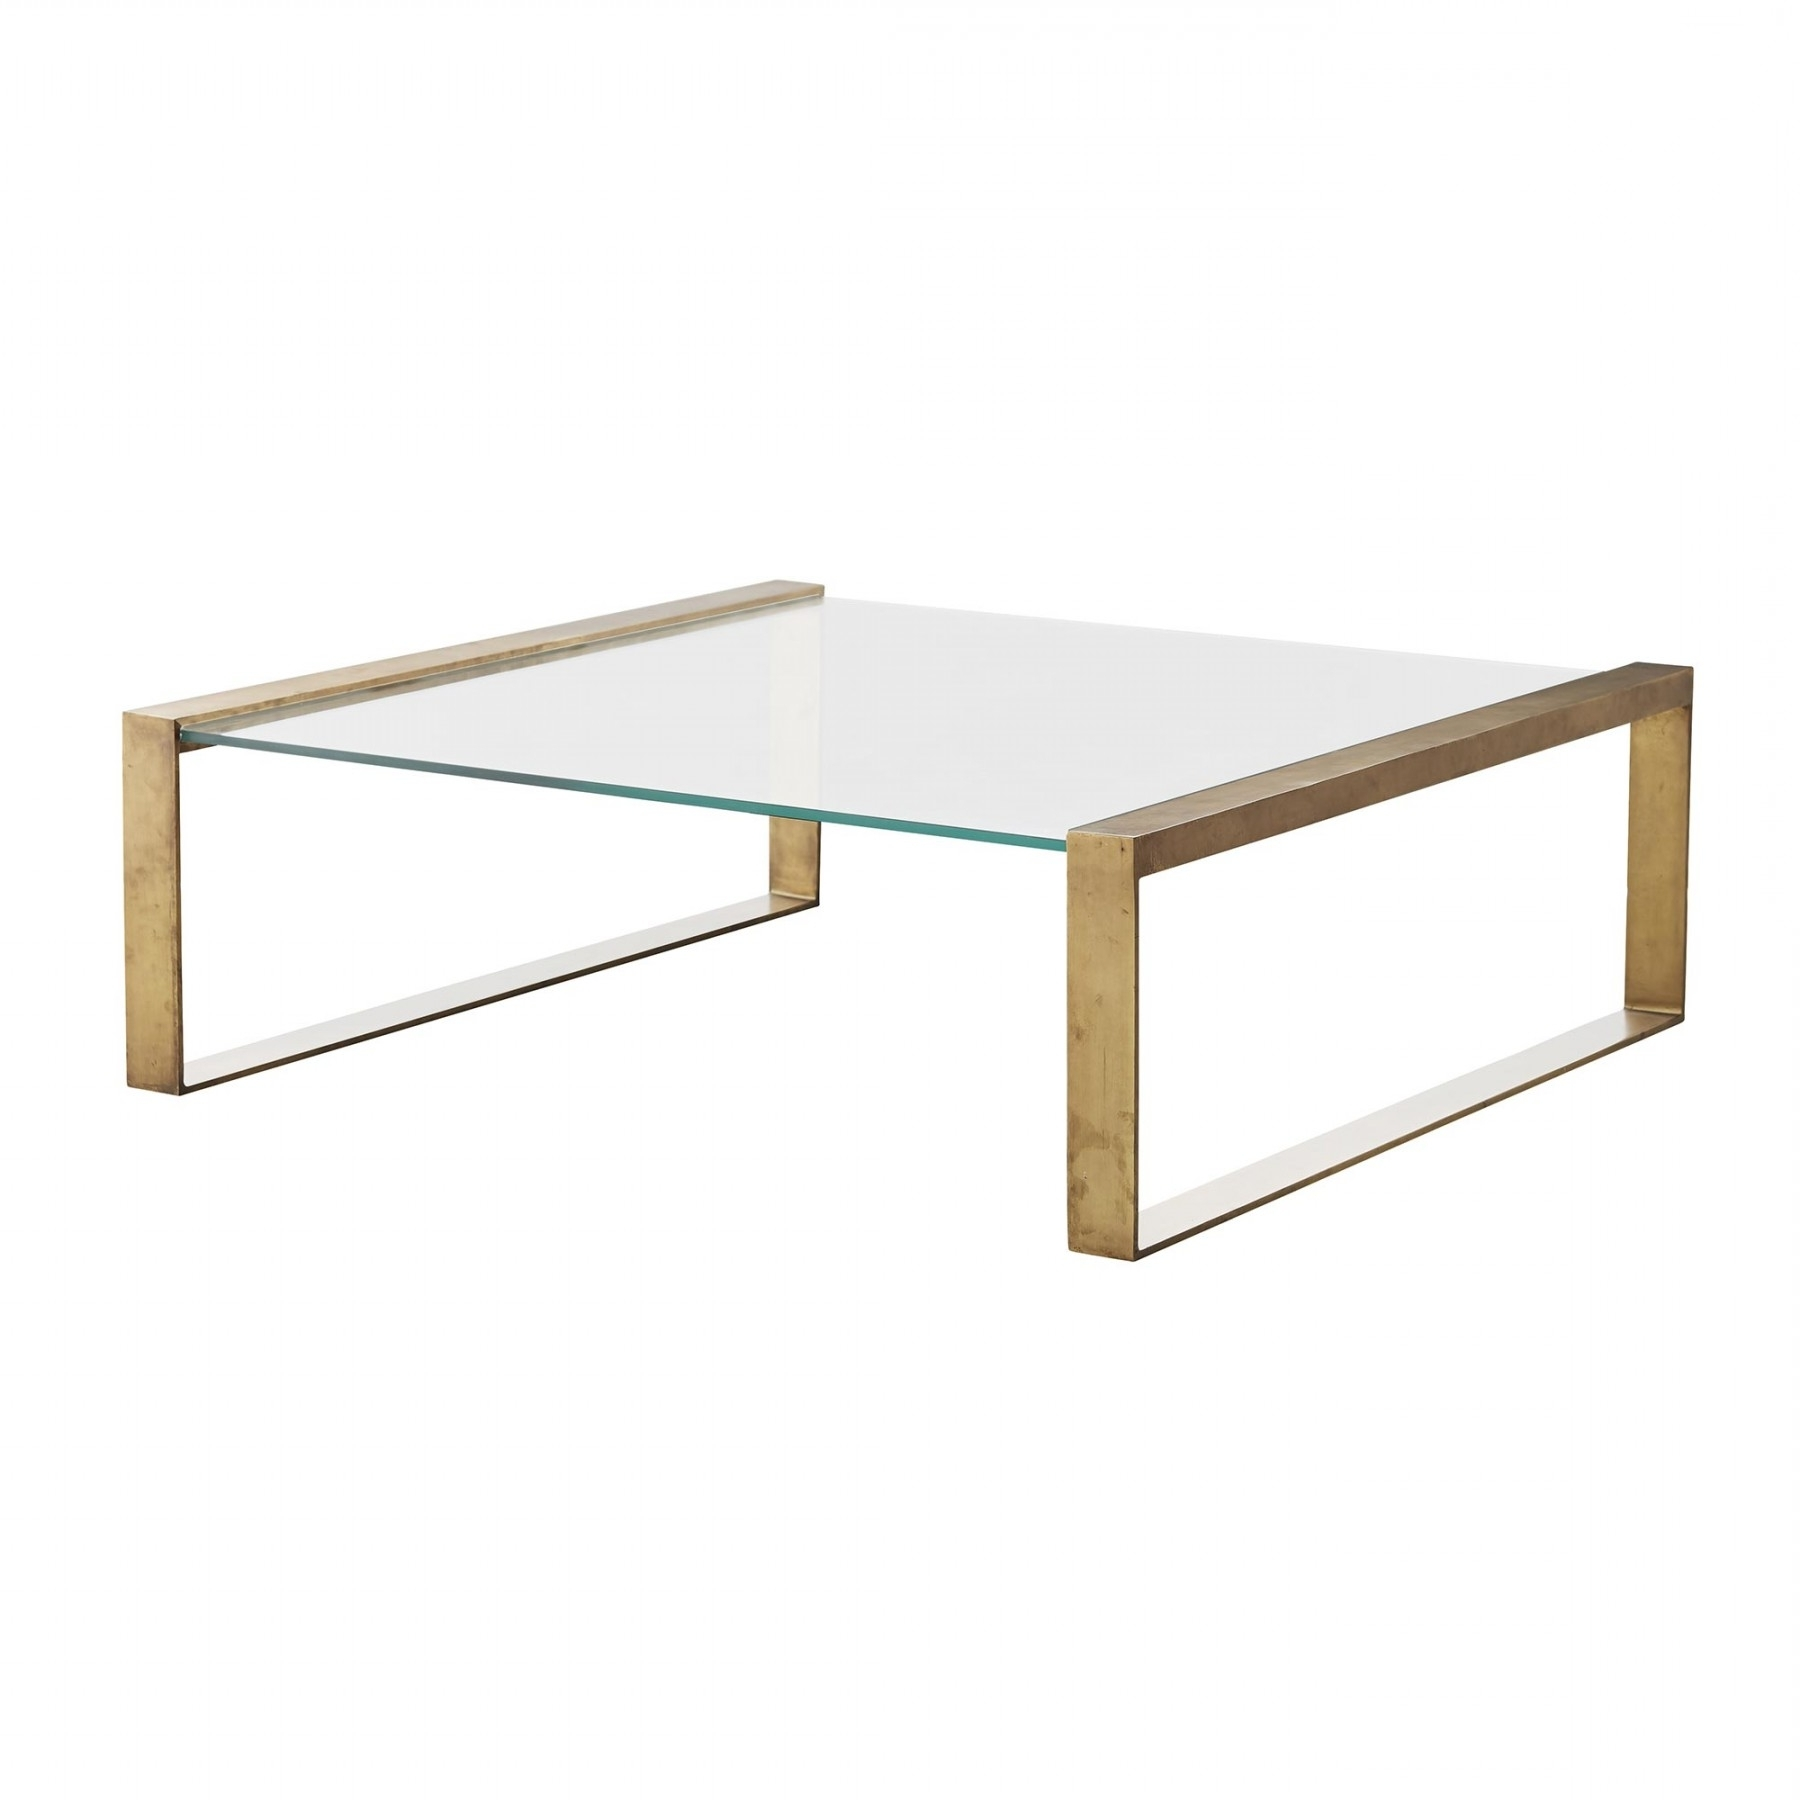 Widely Used Rectangular Brass Finish And Glass Coffee Tables Pertaining To Jocelyn Coffee Table (View 16 of 20)